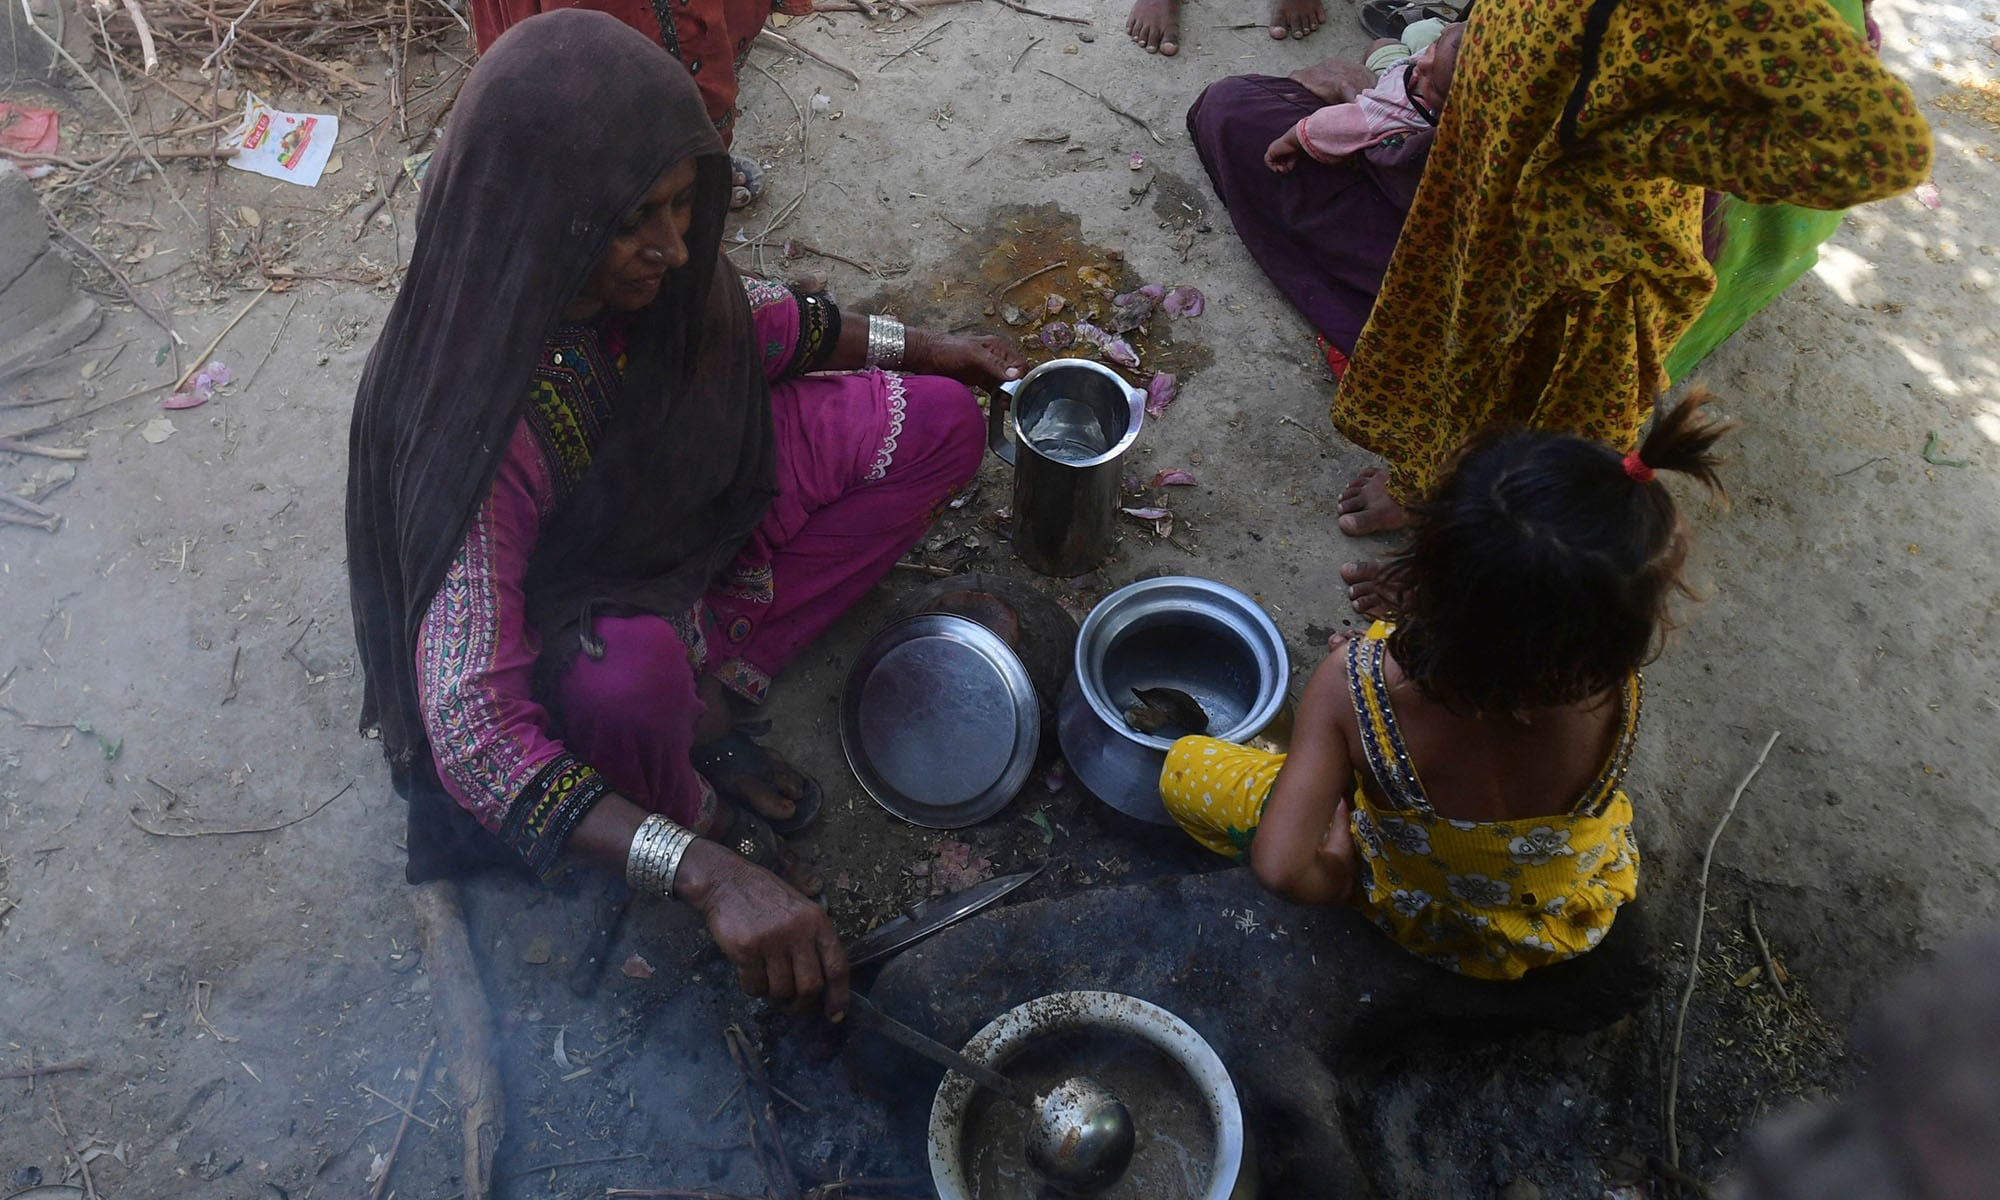 Habiba Mai, wife of Ali Nawaz, a school teacher who helped with the rescue efforts of the train collision, prepares tea for her family at her home near the train accident site in Daharki. — AFP